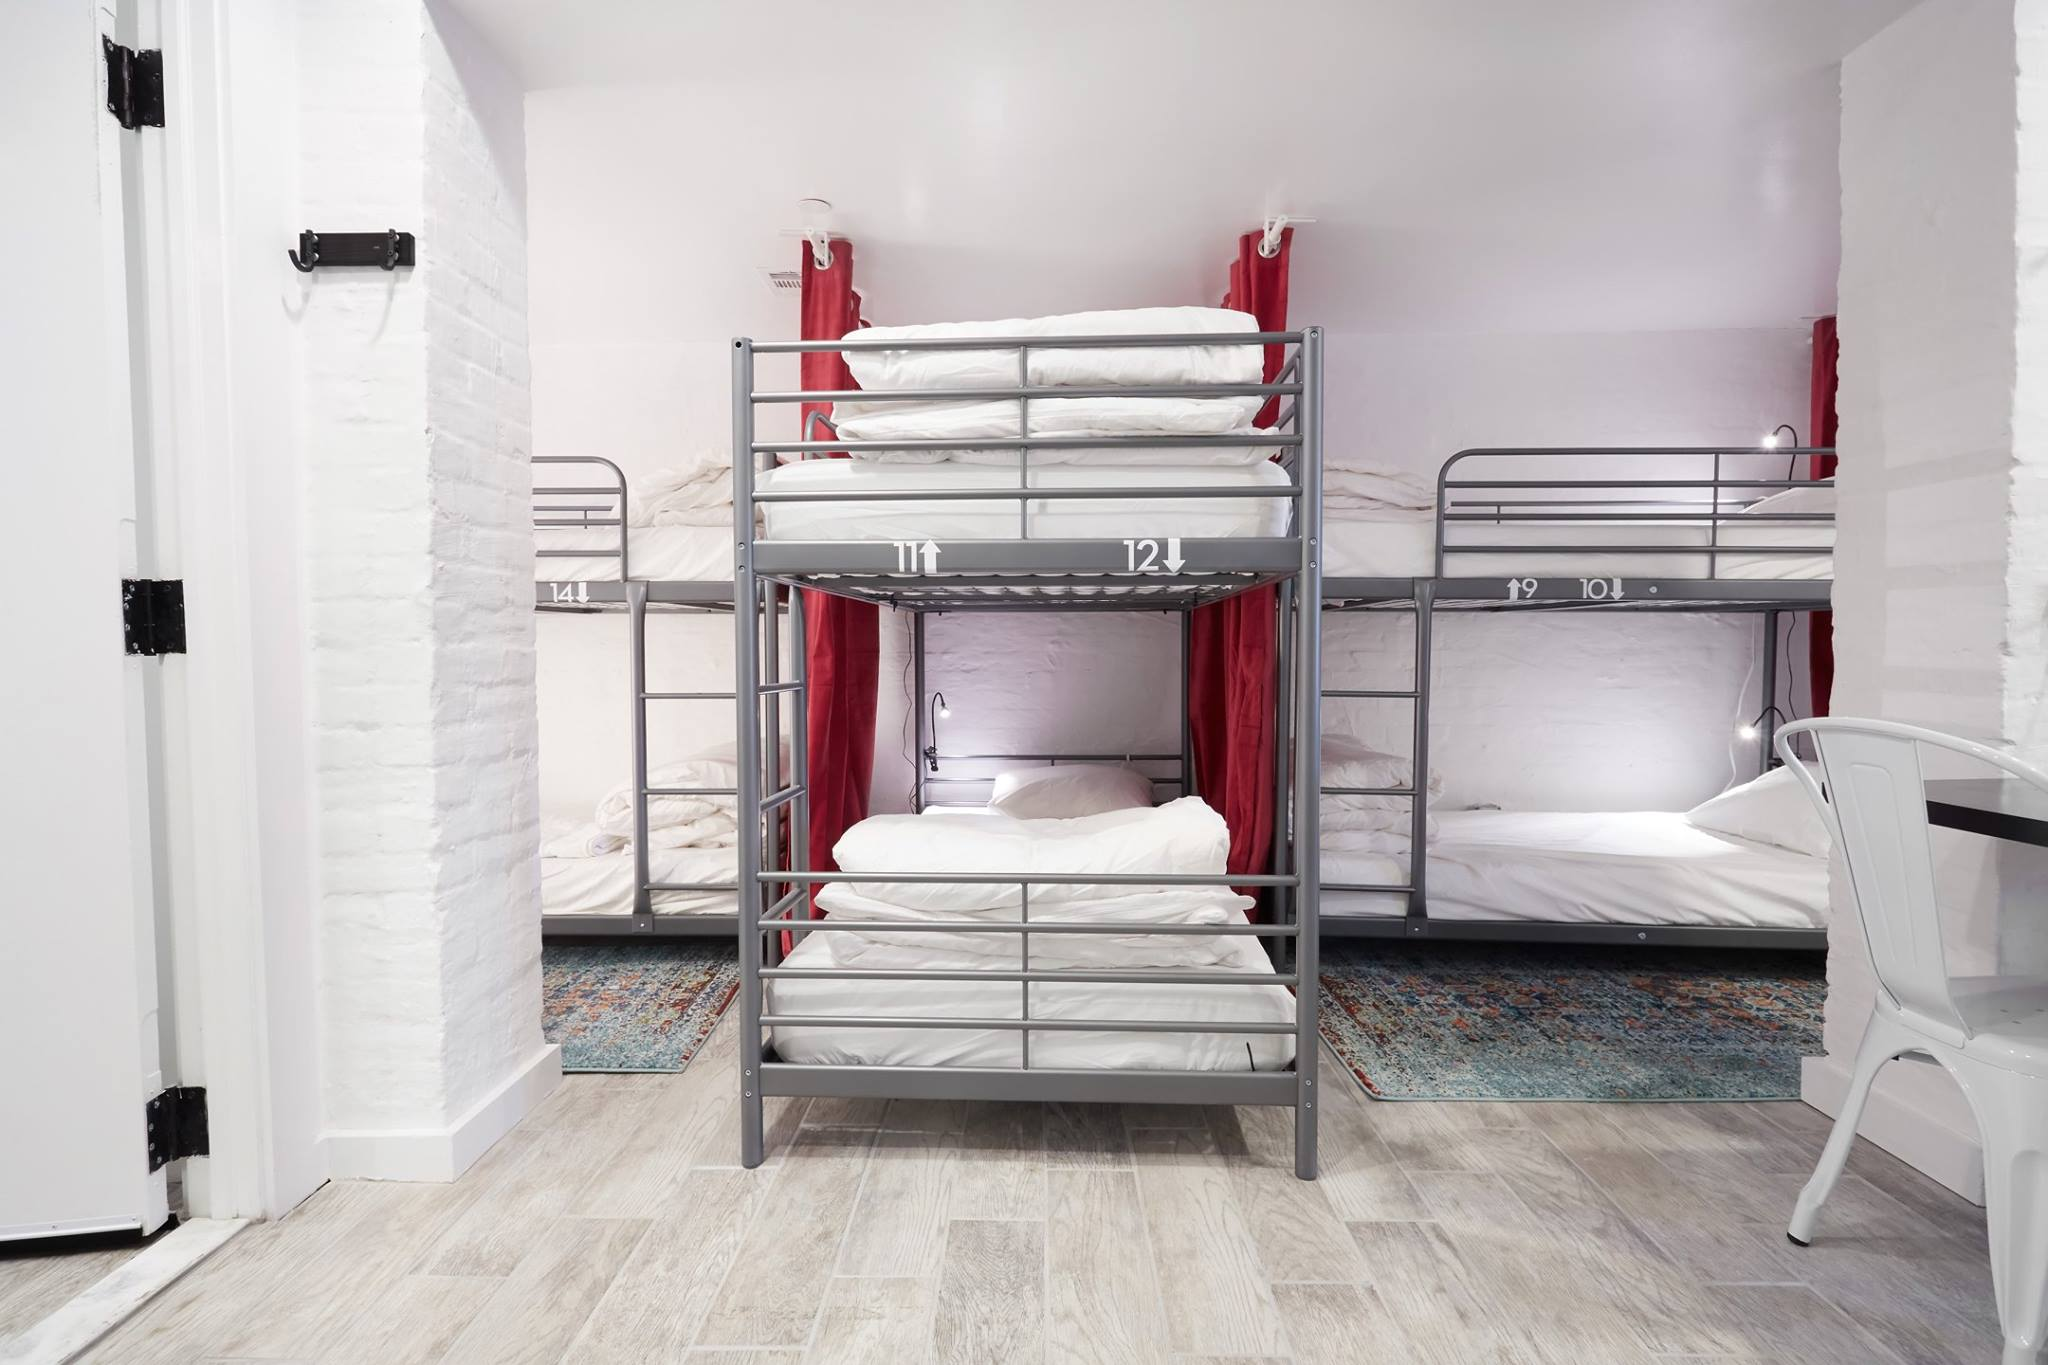 Straight on view of bunk beds and tile floor in backpackers dorm room